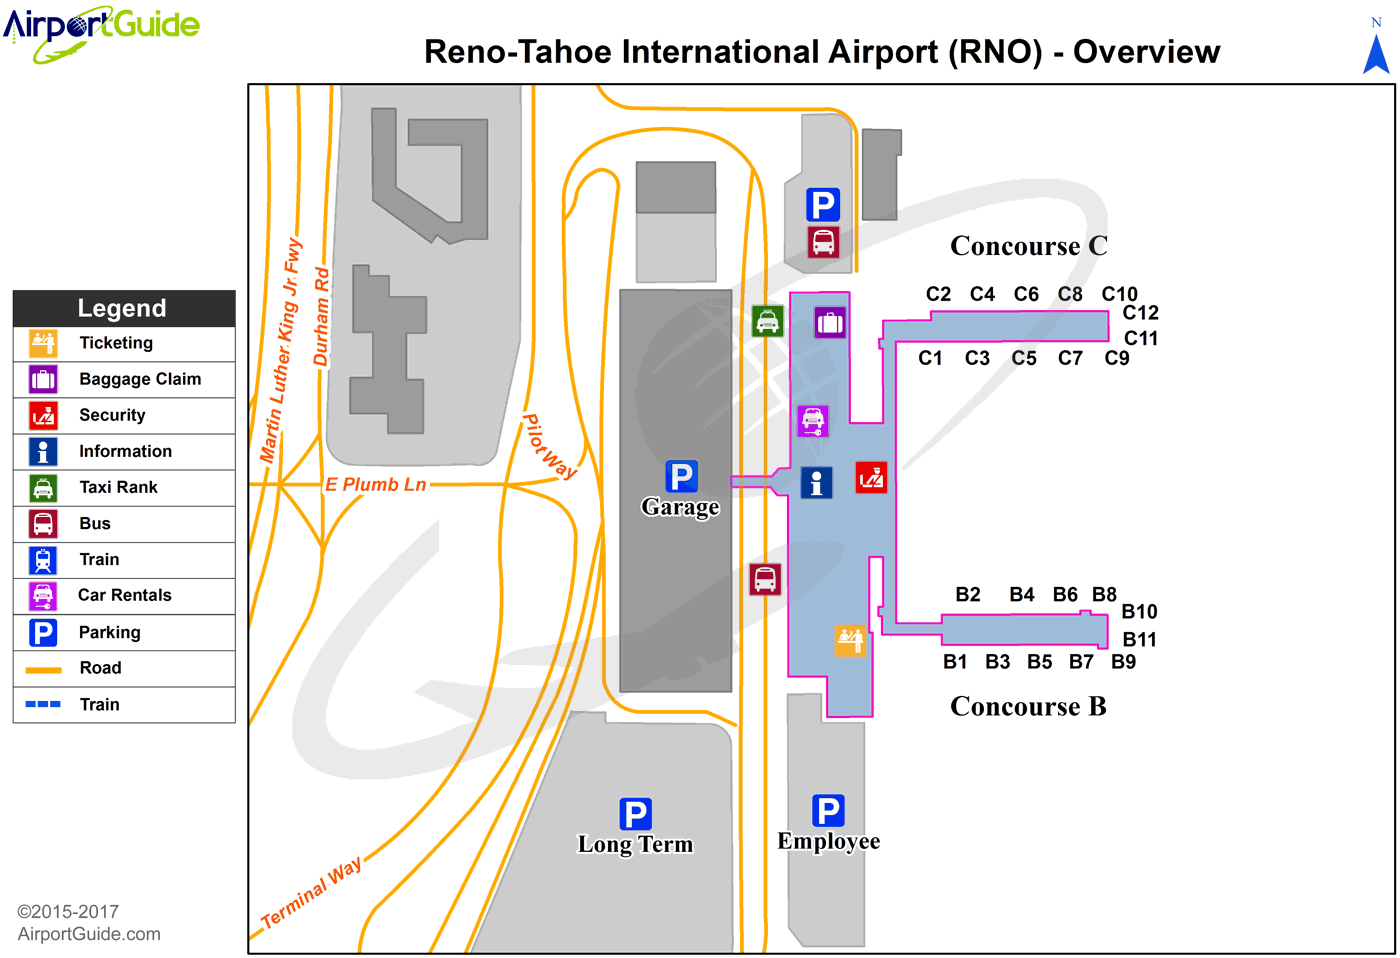 Reno - Reno/Tahoe International (RNO) Airport Terminal Map - Overview